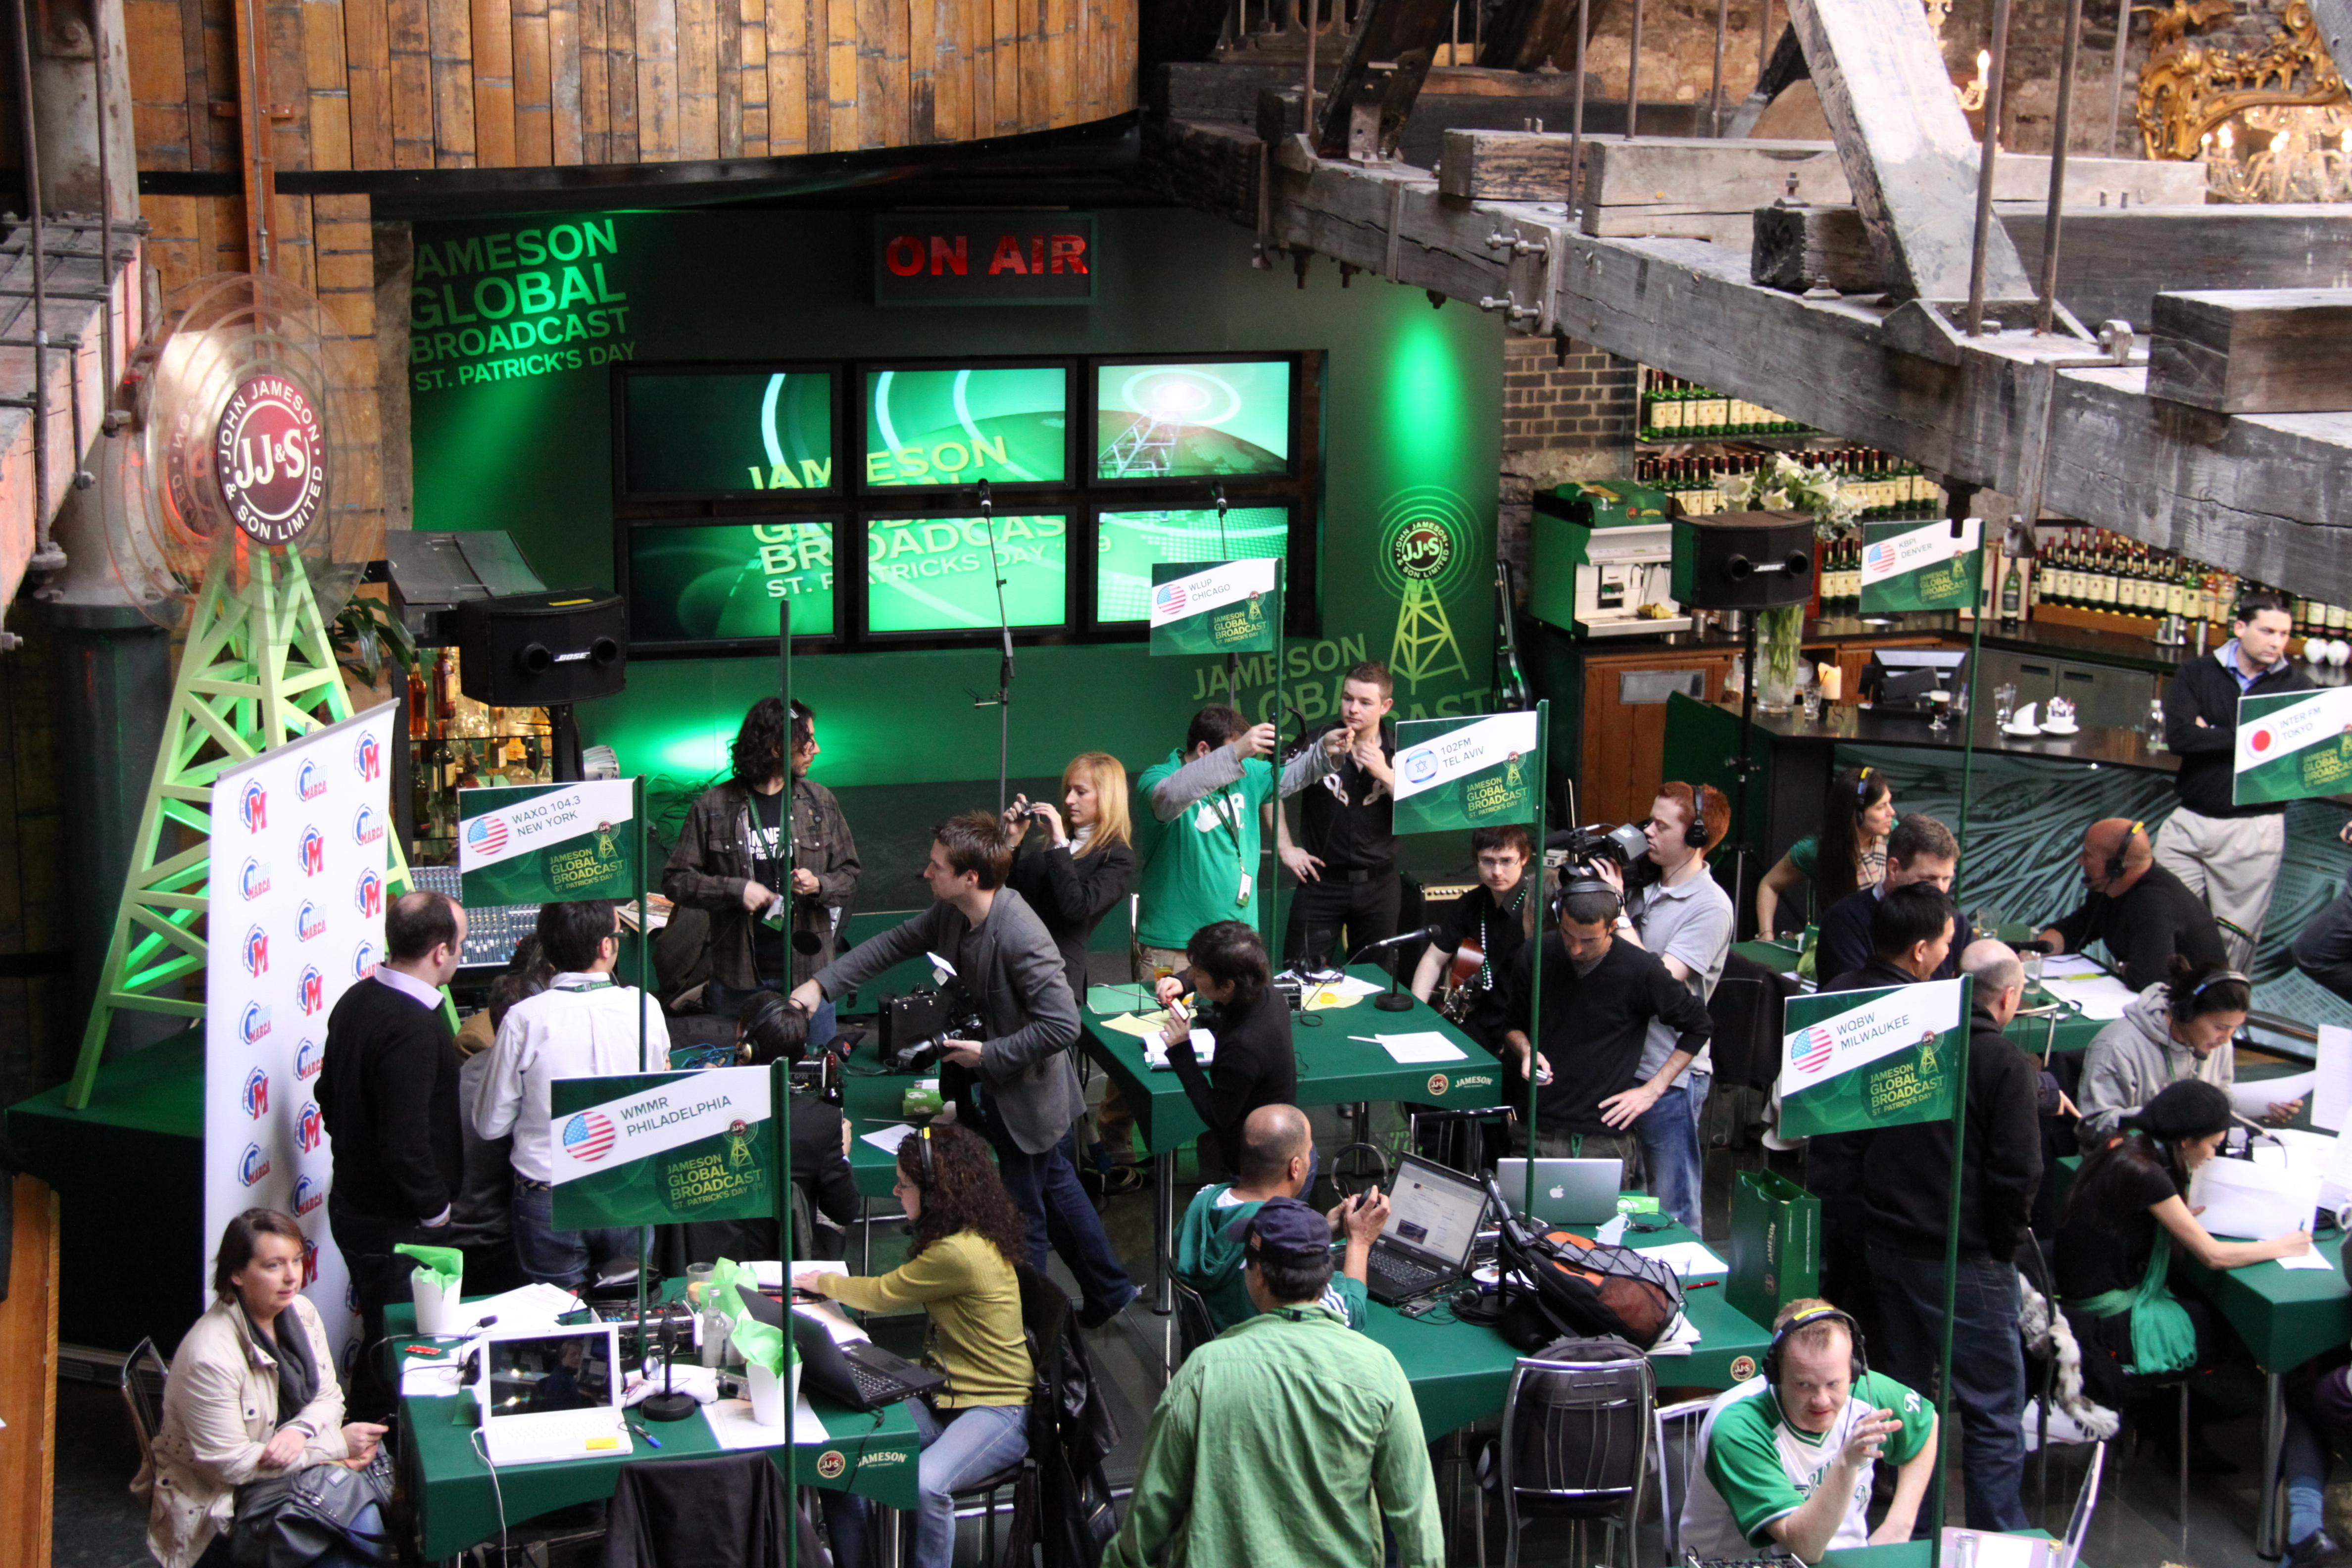 Several groups of people are gathered around tables to broadcast on the radio, nearly all are wearing green